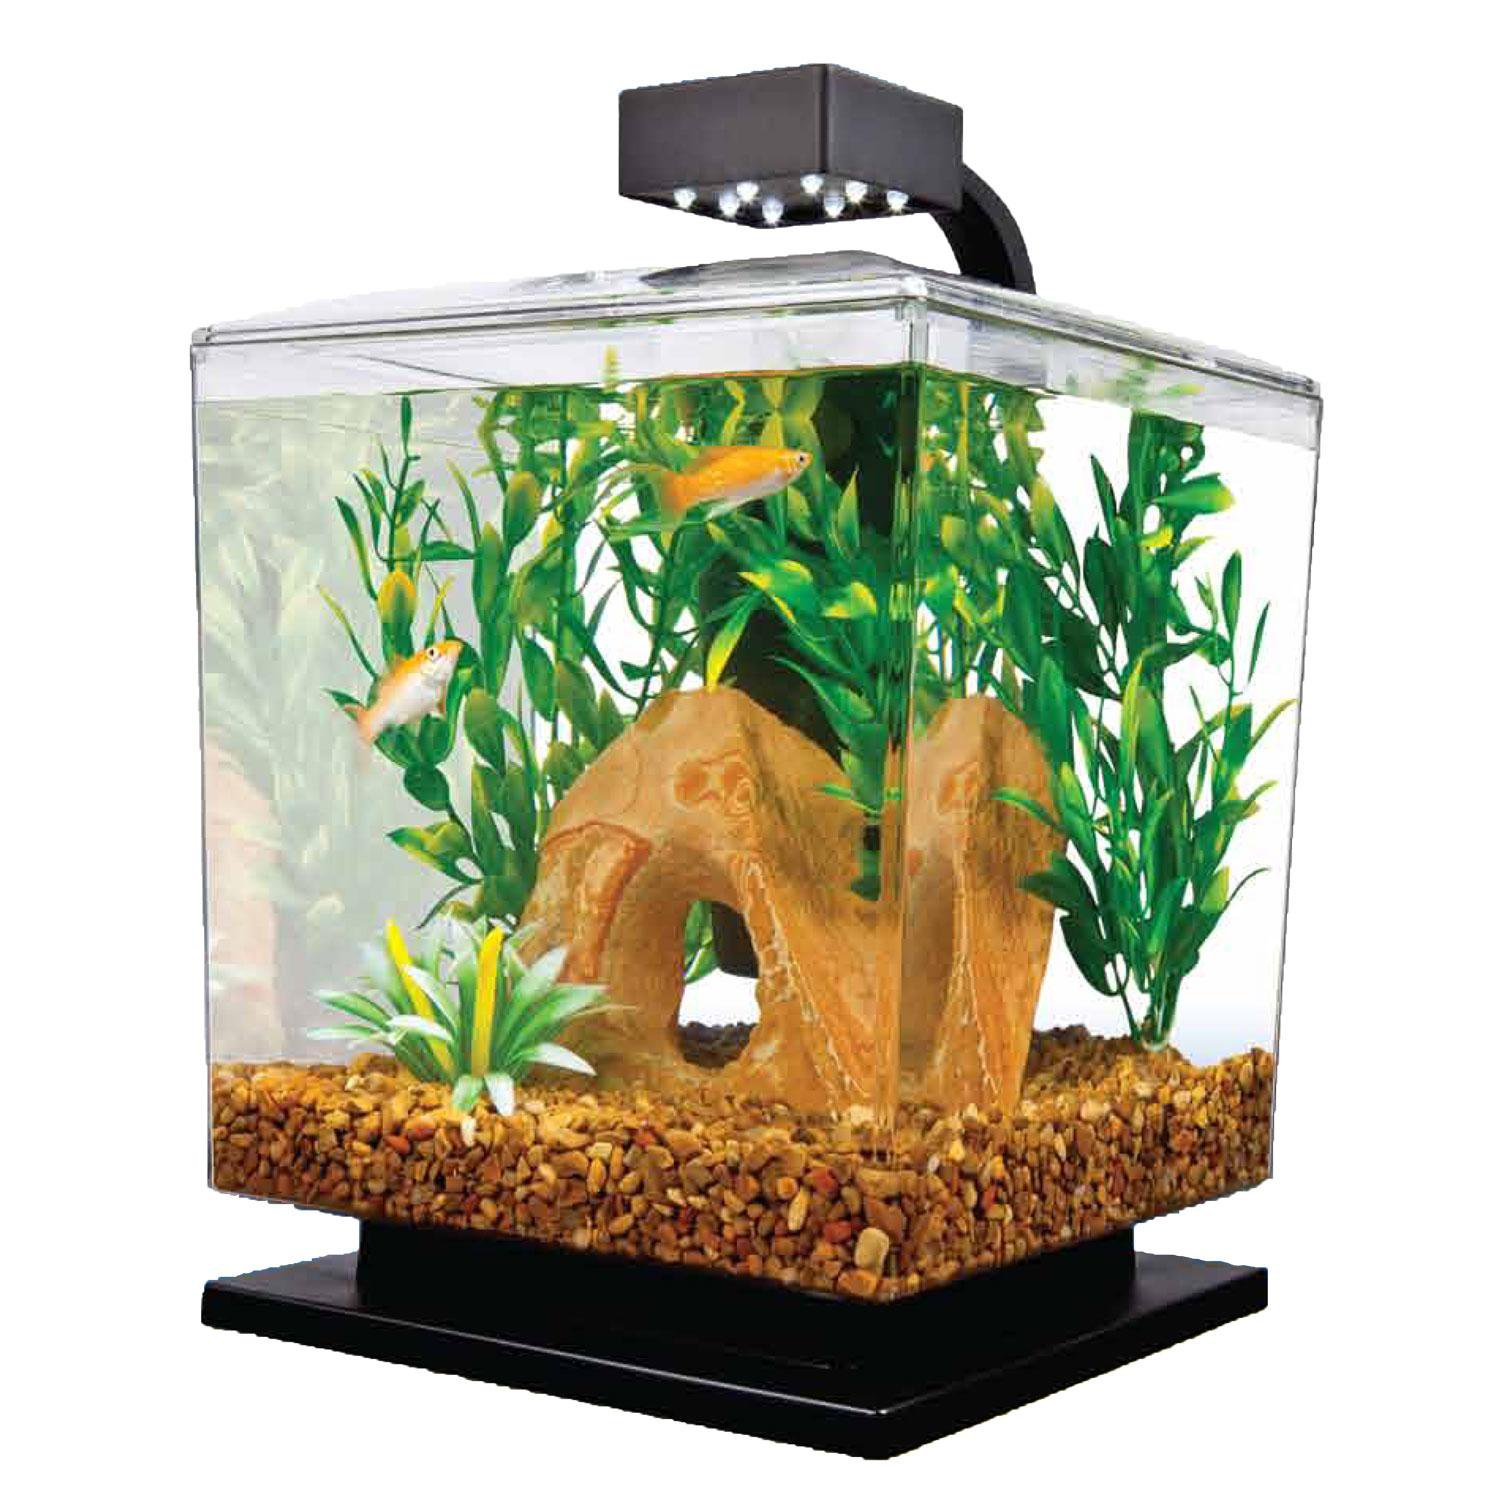 Fish Aquarium - Tetra 1 5 gallon led desktop aquarium kit